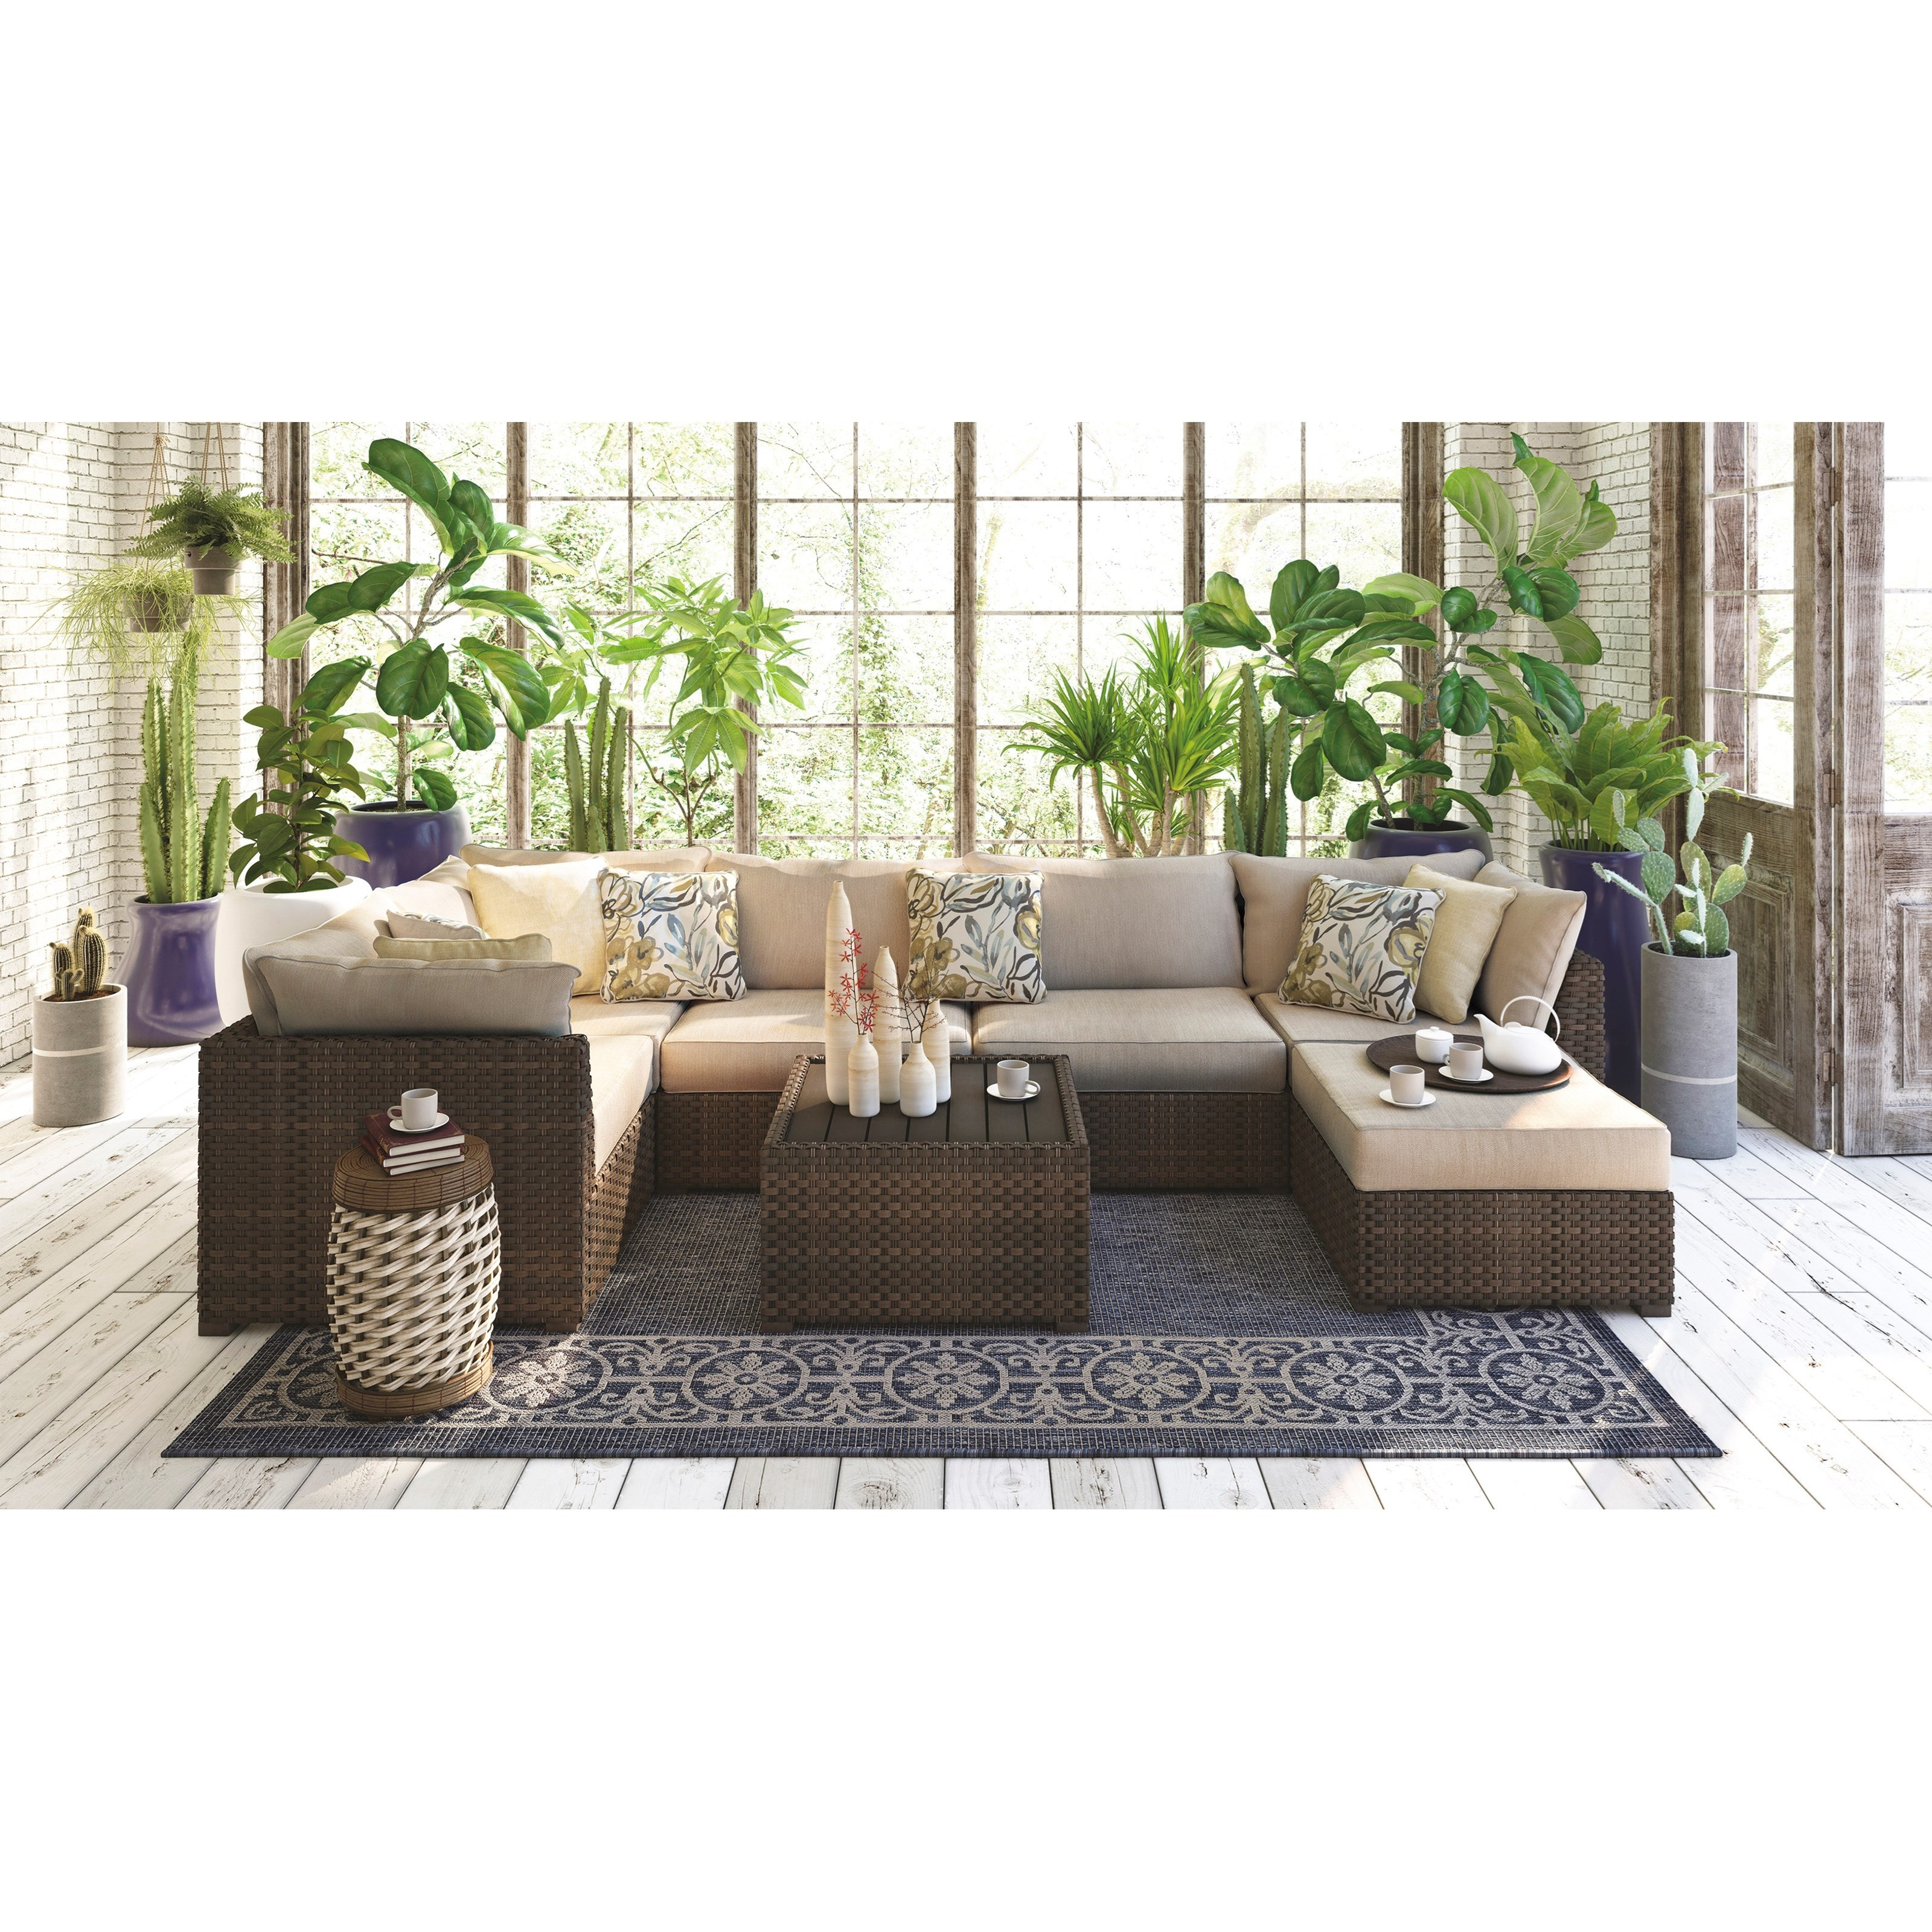 Signature Design by Ashley Spring Ridge 7 Piece Outdoor Set - Item Number: P452-077+846+877